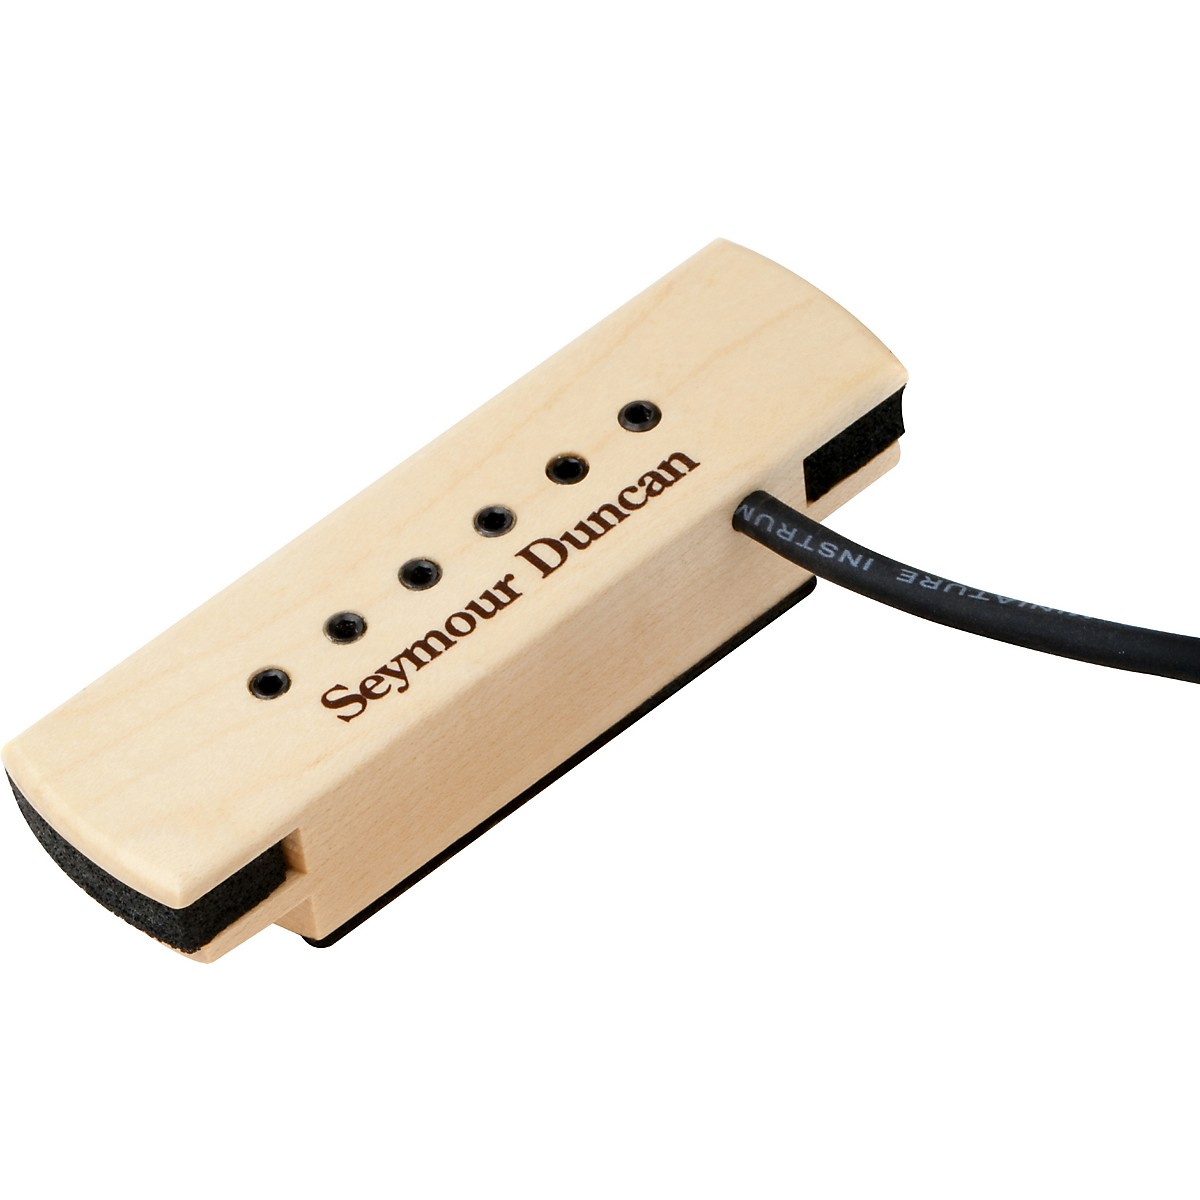 Seymour Duncan Woody XL Adjustable Pole Pieces Soundhole Pickup